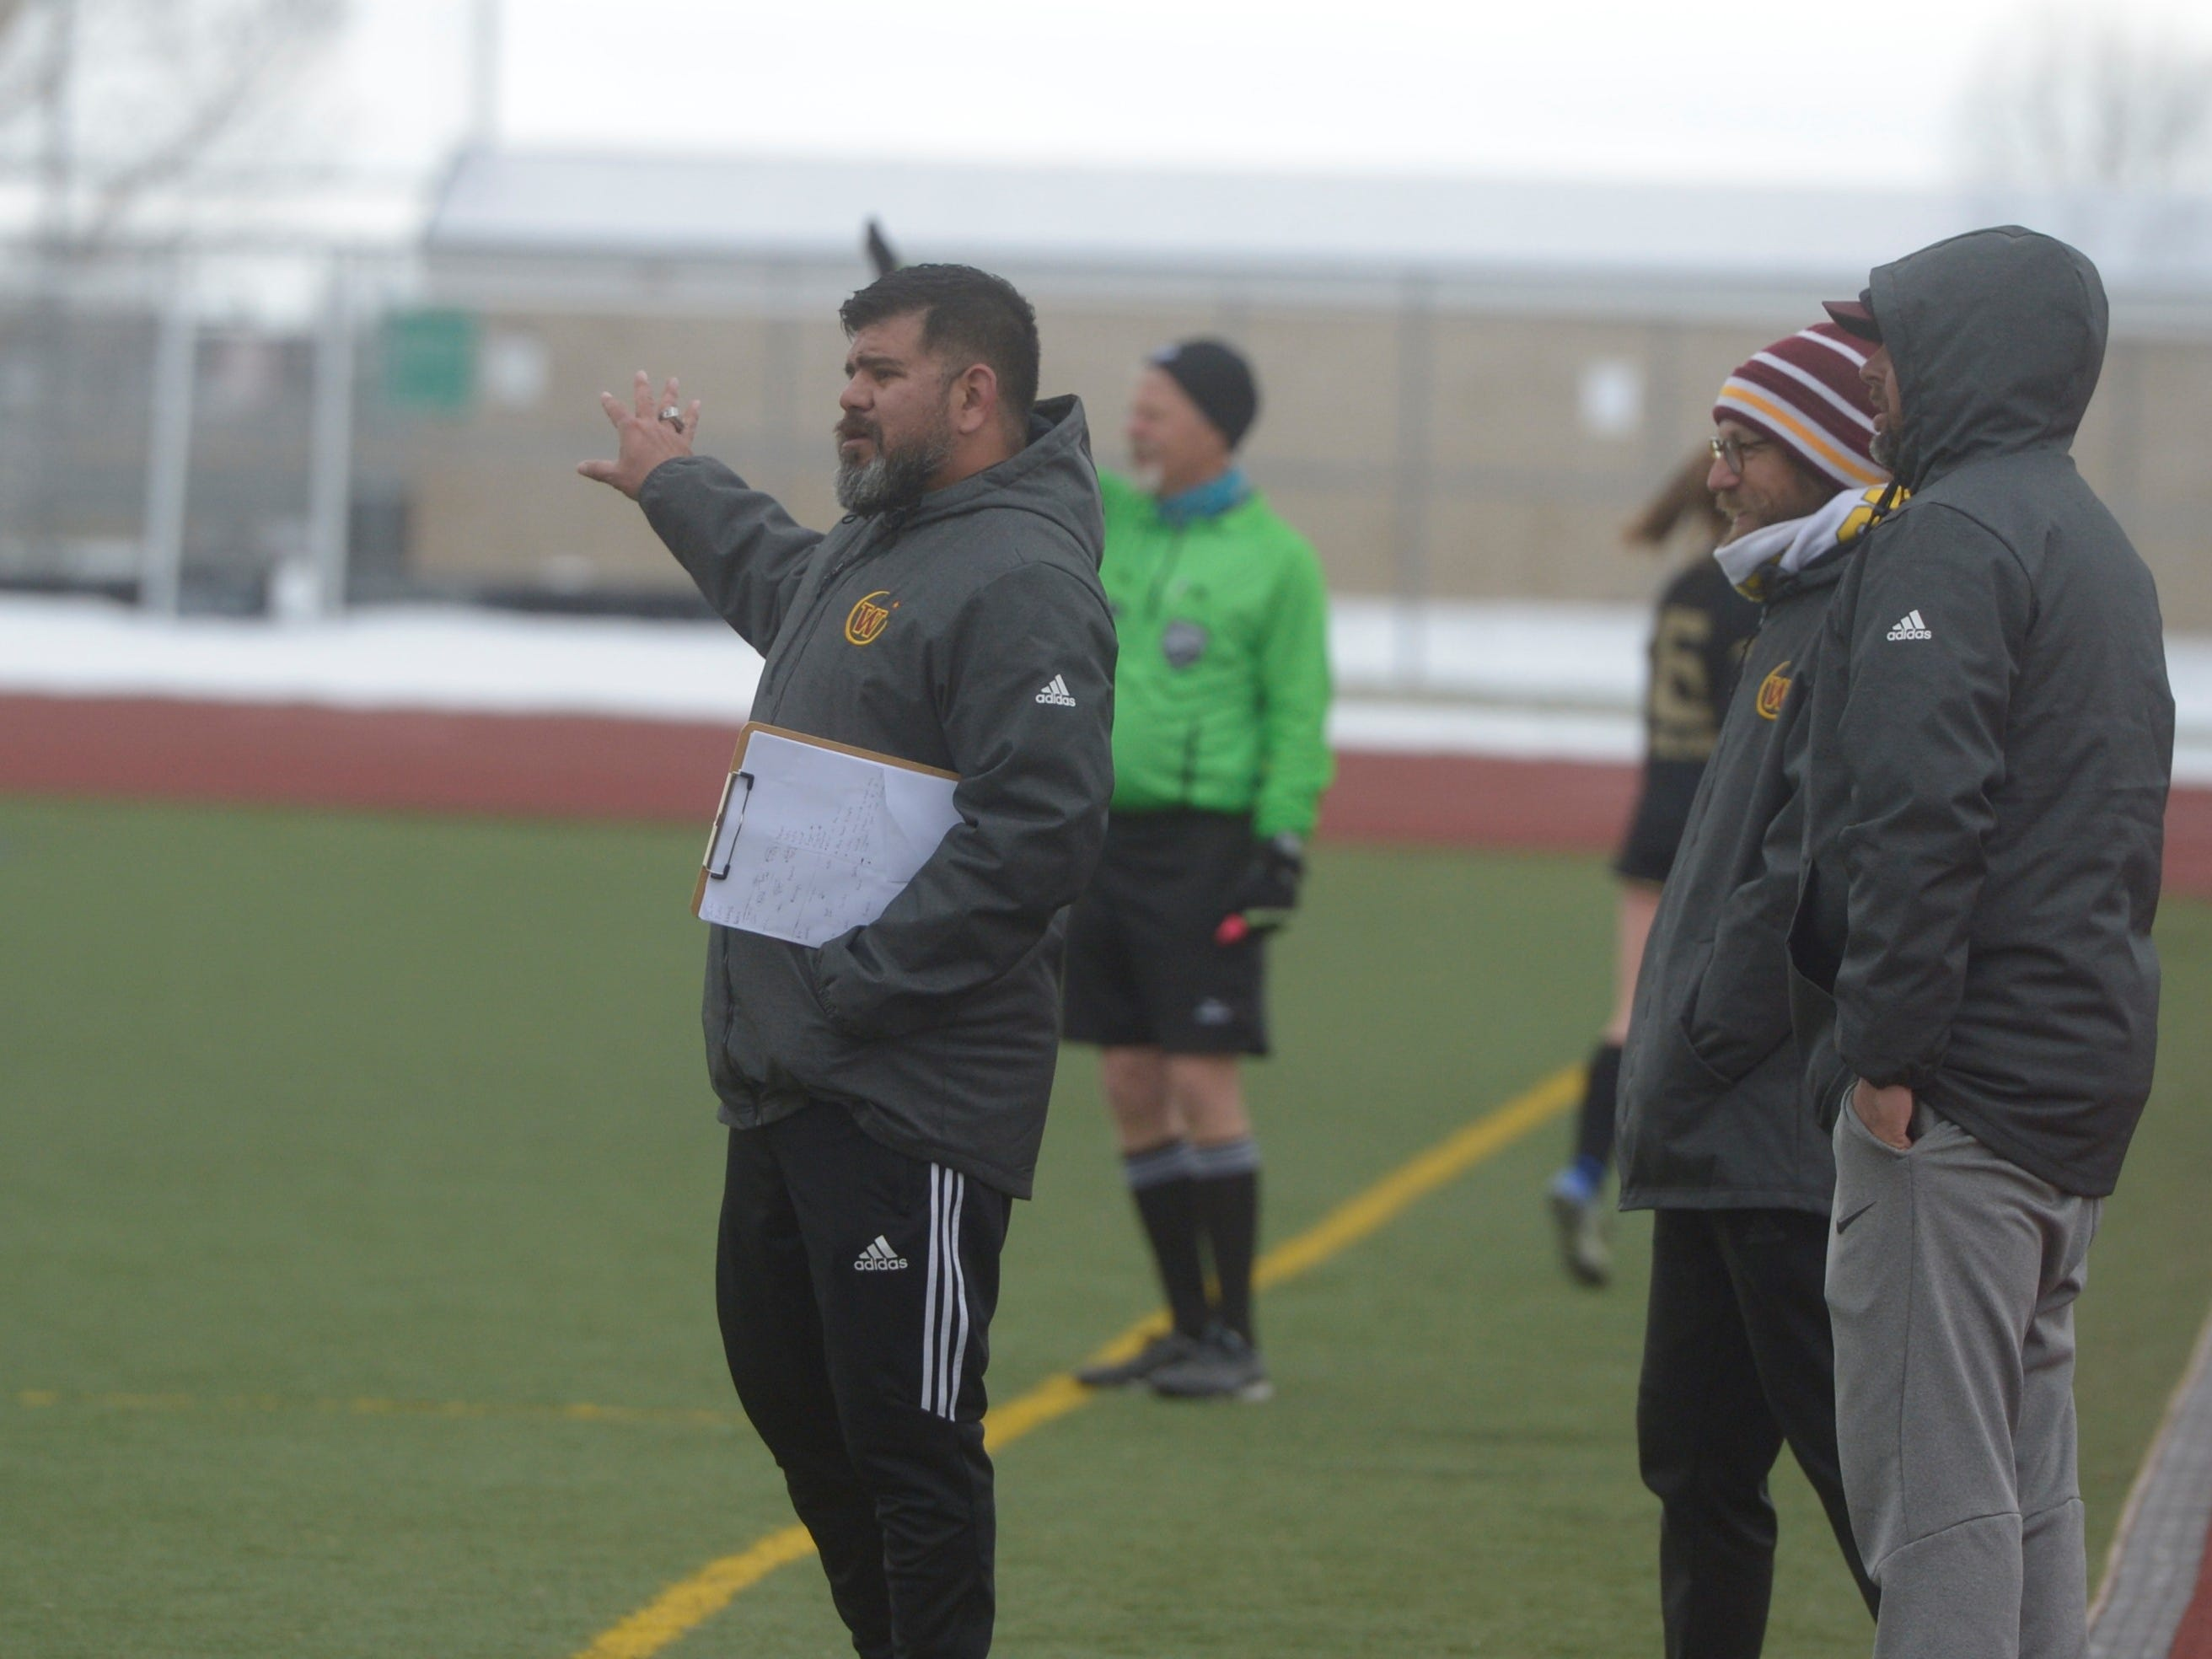 Windsor girls soccer coach Mario Garcia signals to players in a game Saturday, April 13, 2019 at Fossil Ridge. Windsor won 3-0.